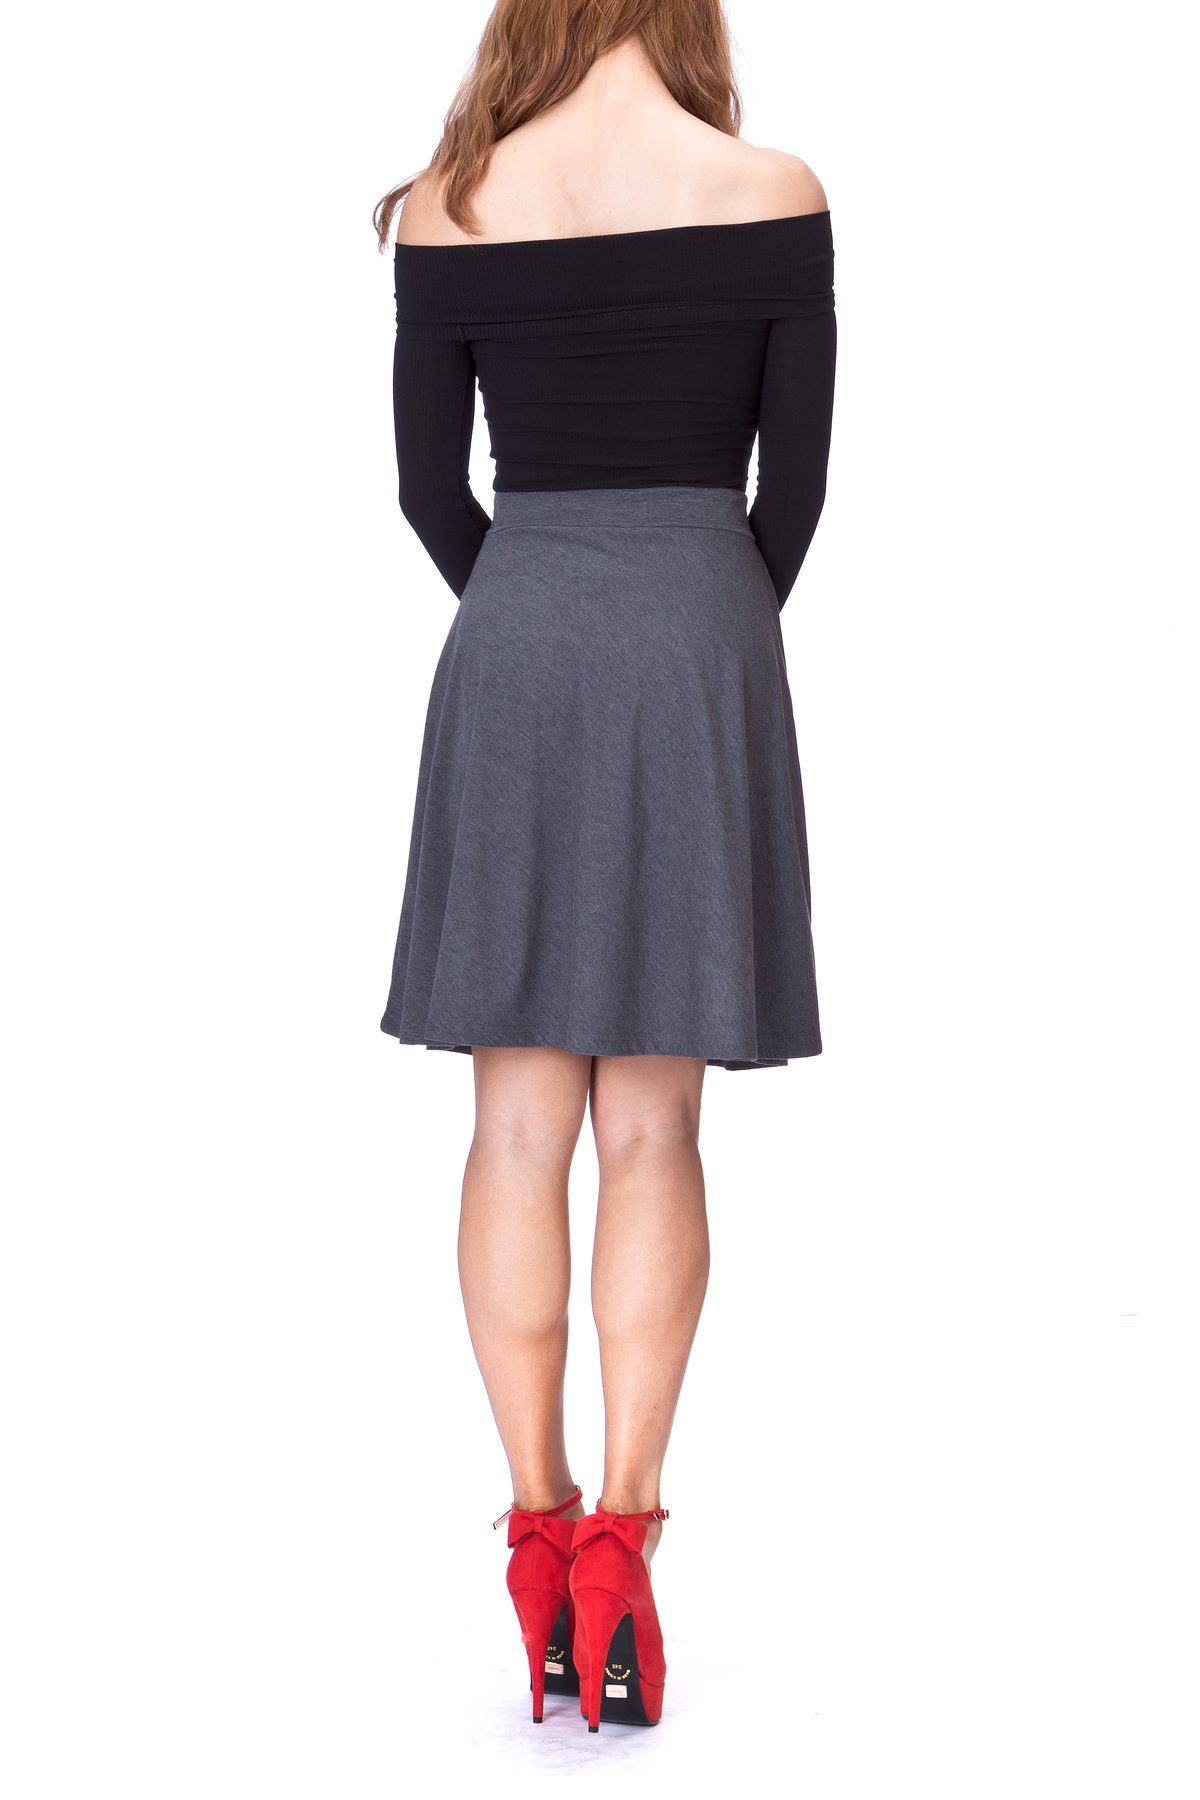 Simple Stretch A line Flared Knee Length Skirt Charcoal 4 1